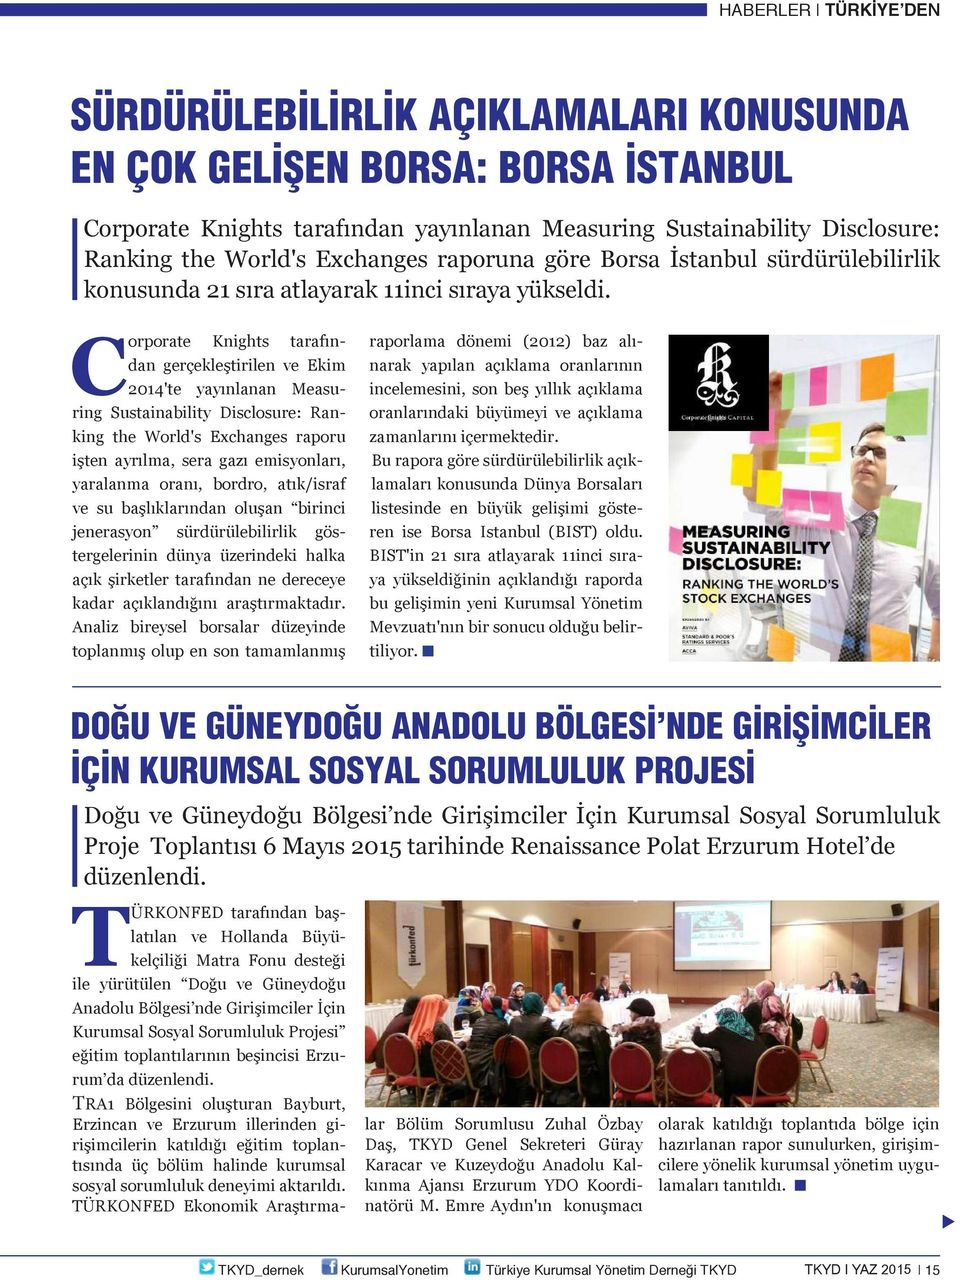 Corporate Knights tarafından gerçekleştirilen ve Ekim 2014'te yayınlanan Measuring Sustainability Disclosure: Ranking the World's Exchanges raporu işten ayrılma, sera gazı emisyonları, yaralanma